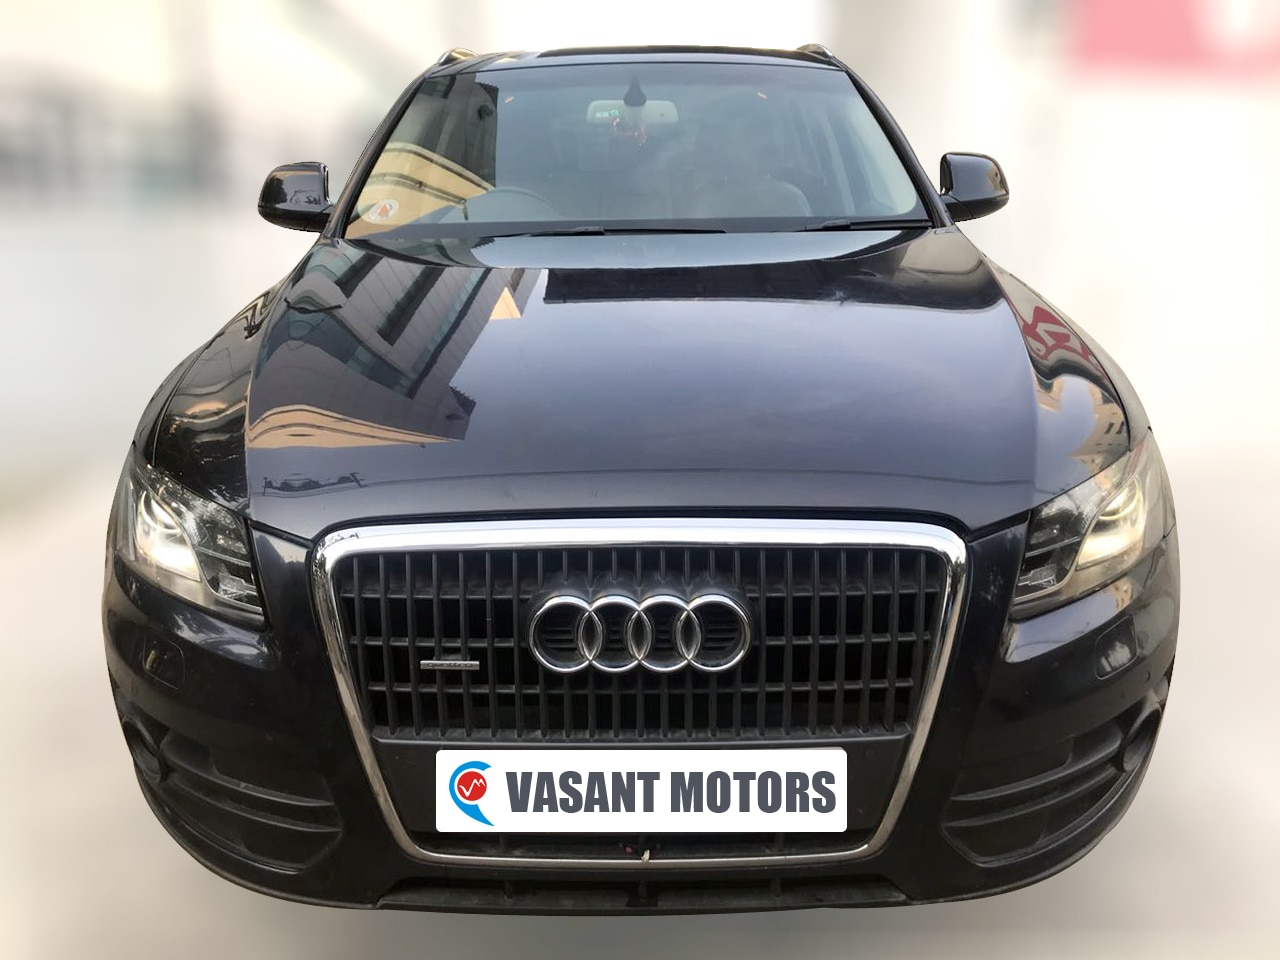 AUDI Q5 2.0 TDI ( MOONLIGHT BLUE METALLIC COLOR, DIESEL), 2012 model done only 82, 000km in absolute mint condition. For further info call 7569696666